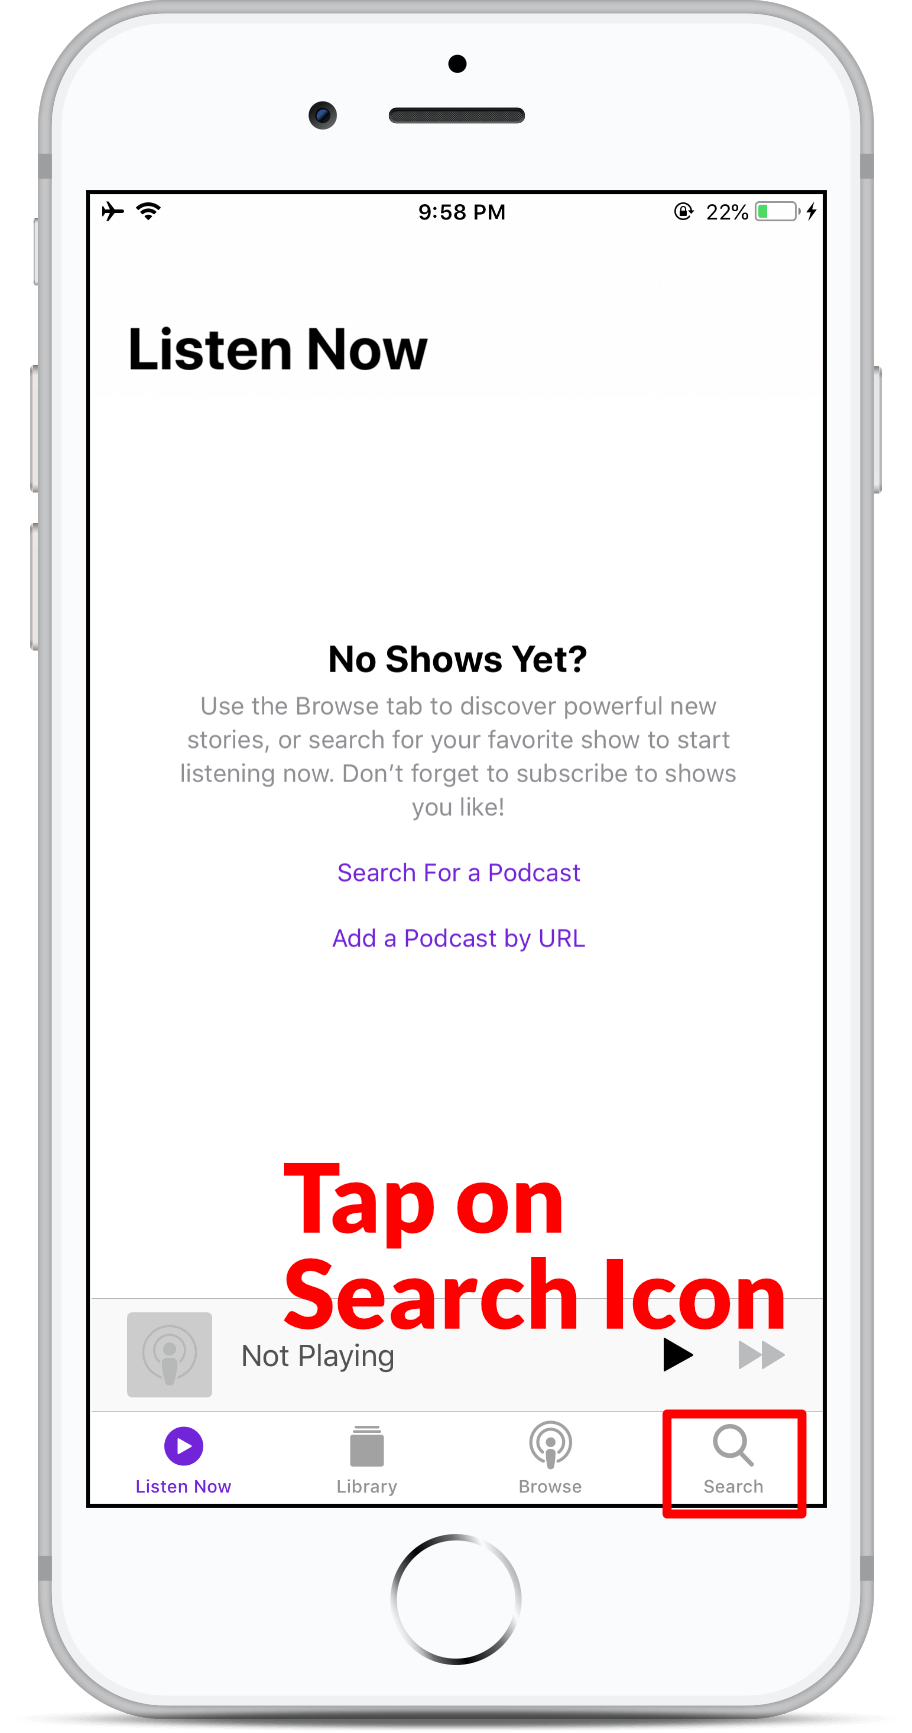 Subscribe on Apple Podcast - Step 2